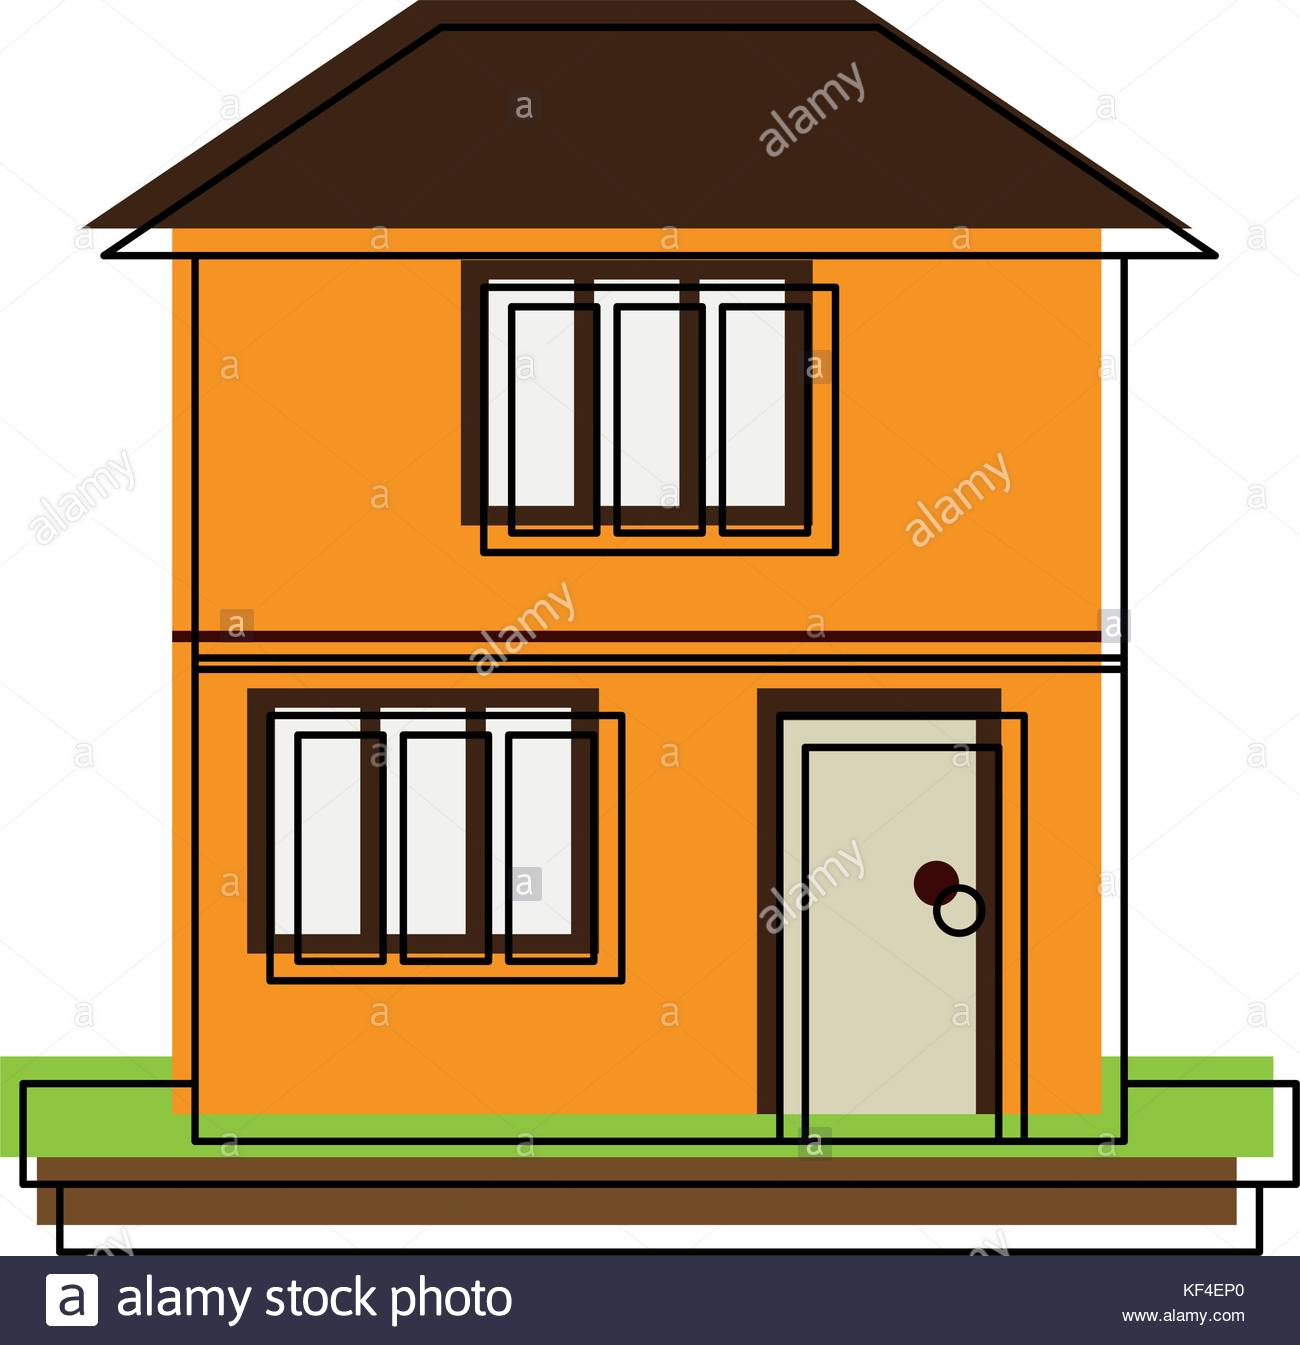 family home or two story house icon image Stock Vector Art.